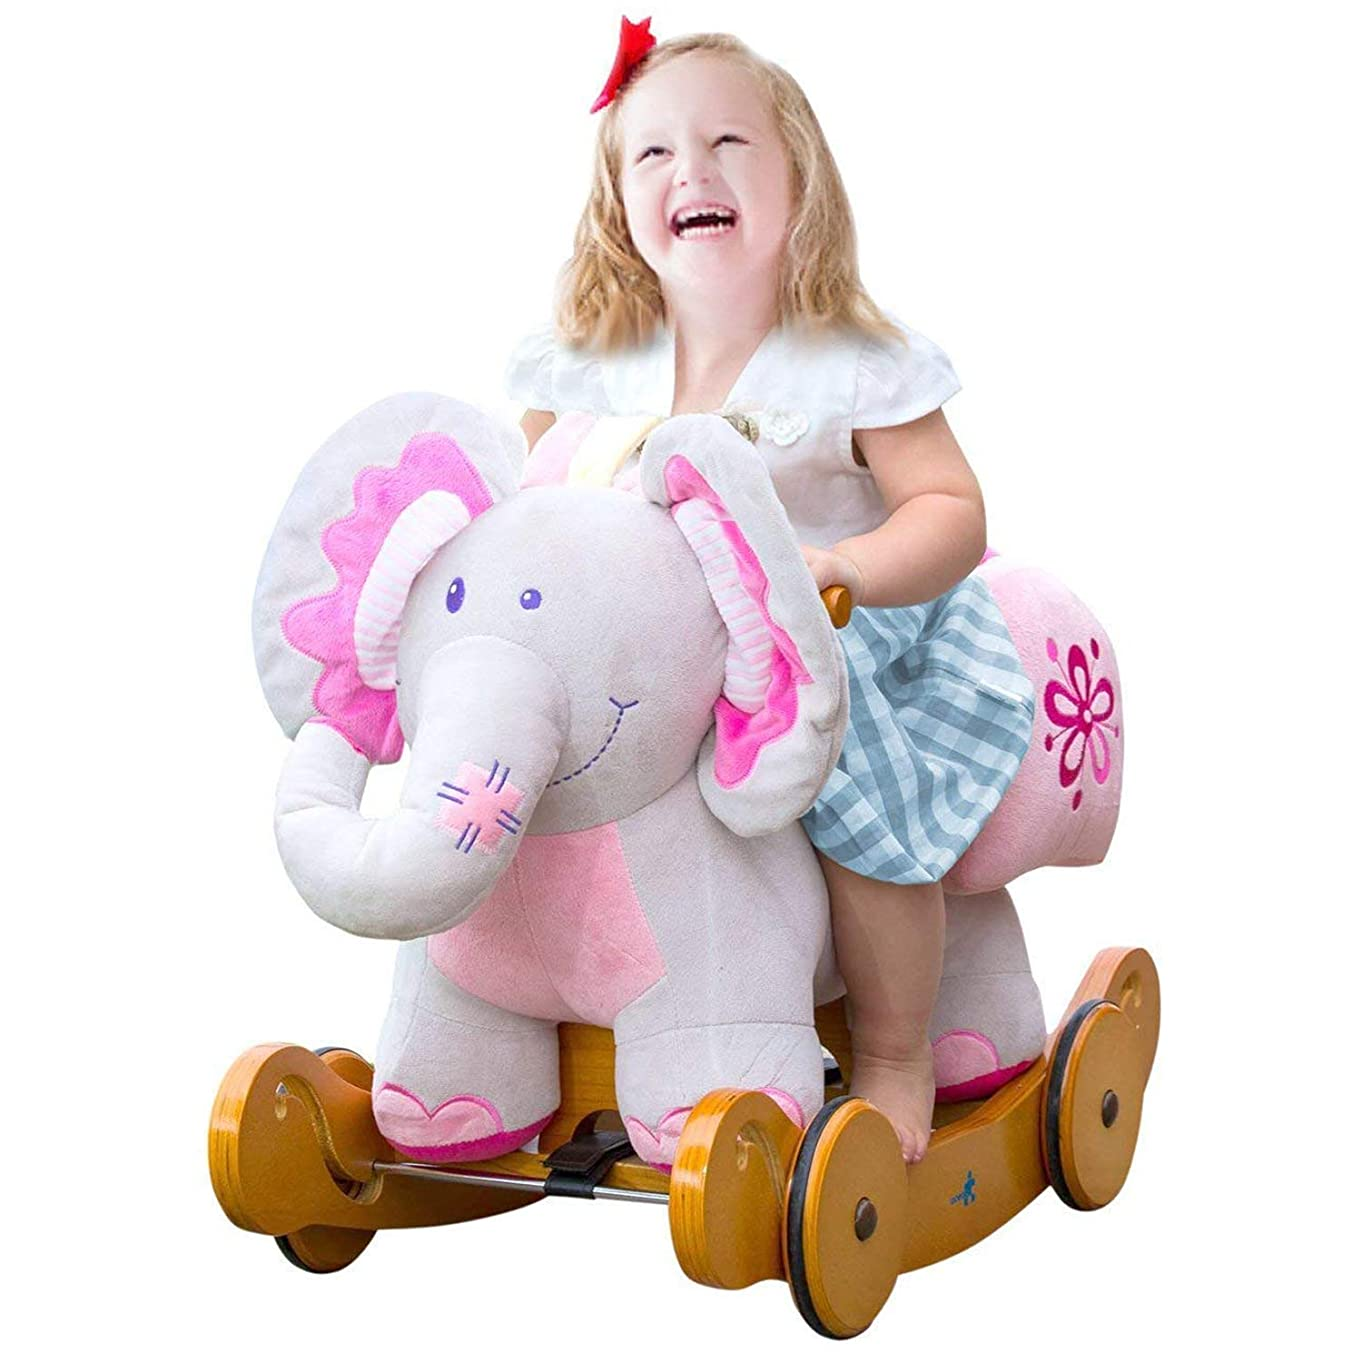 labebe?-?Plush?Rocking?Horse,?Pink?Ride?Elephant,?Stuffed?Rocker?Toy?for?Child?1-3?Year?Old,?Kid?Ride?On?Toy?Wooden,?2?In?1?Rocking?Animal?with?Wheel?for?Infant/Toddler(Girl&Boy),Nursery?Birthday?Gift